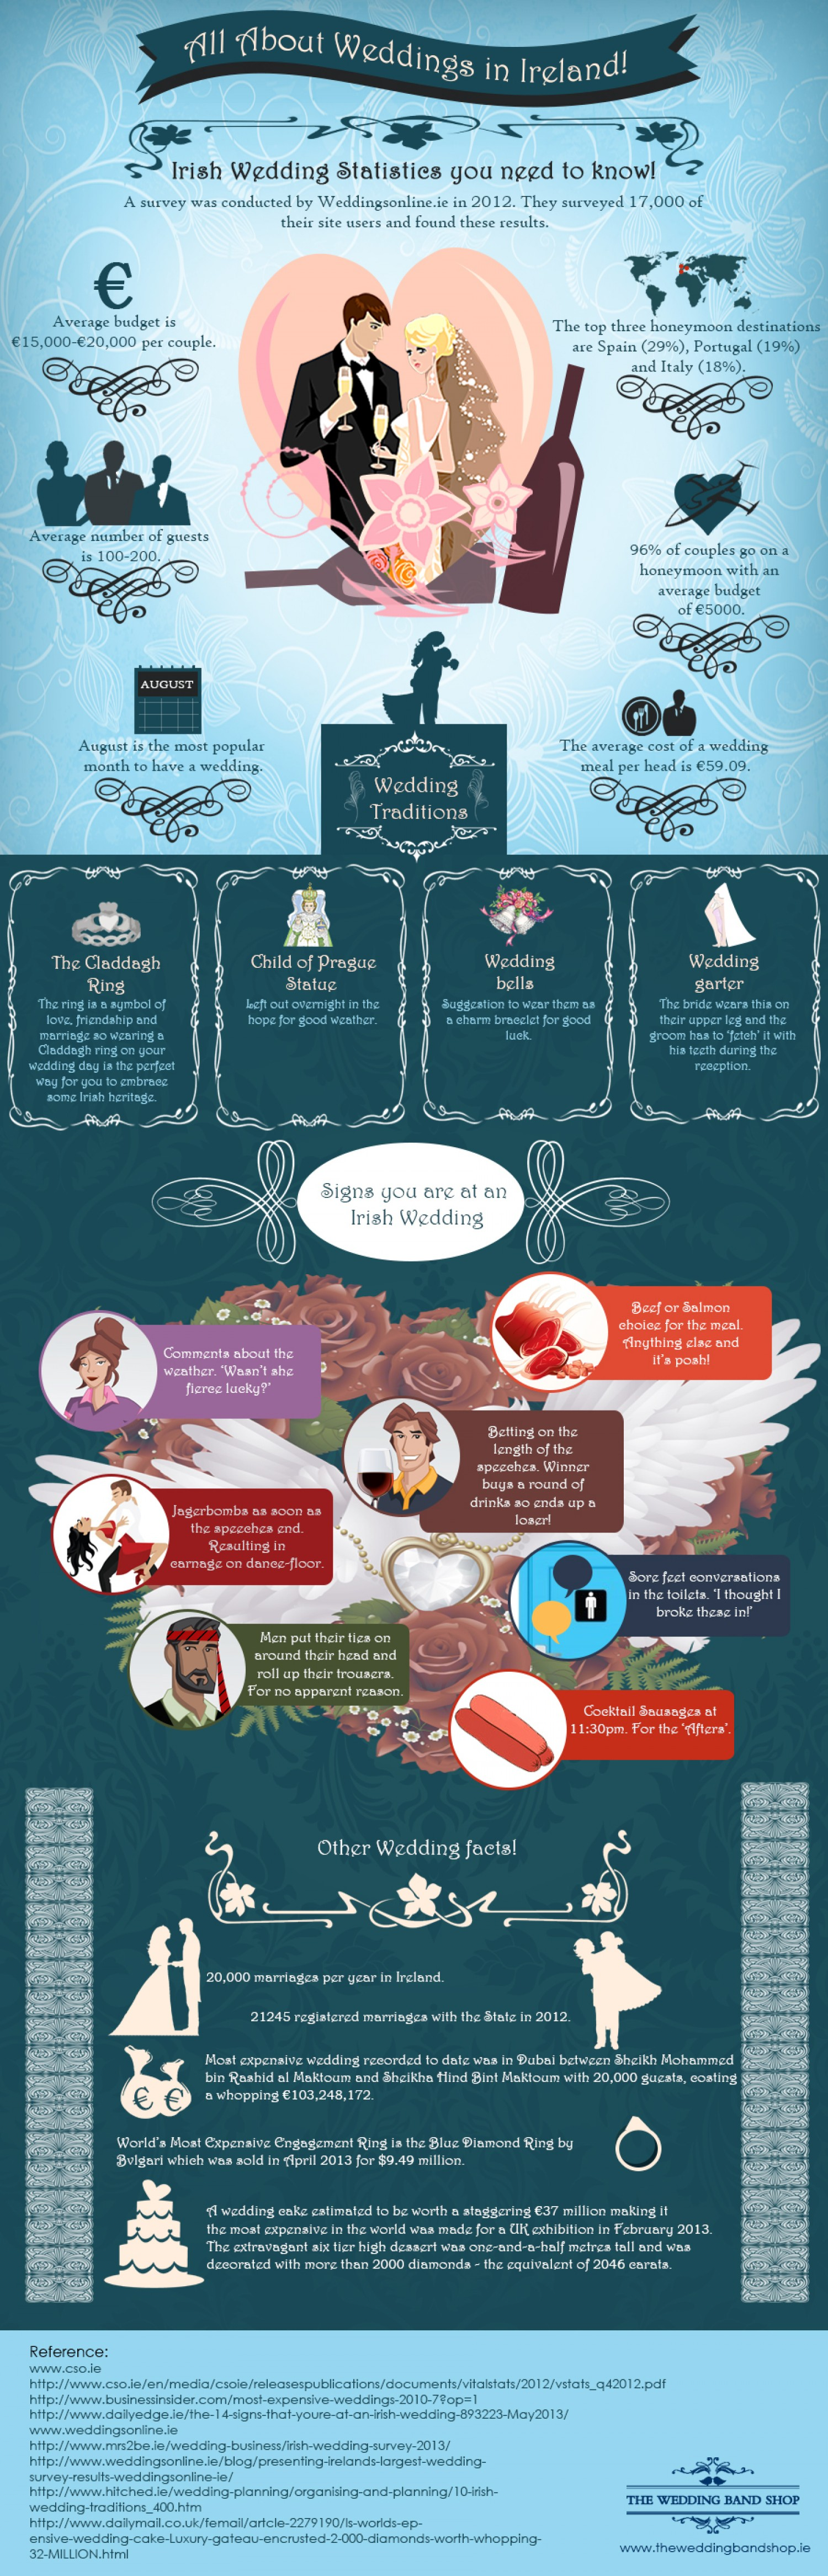 All about weddings in Ireland